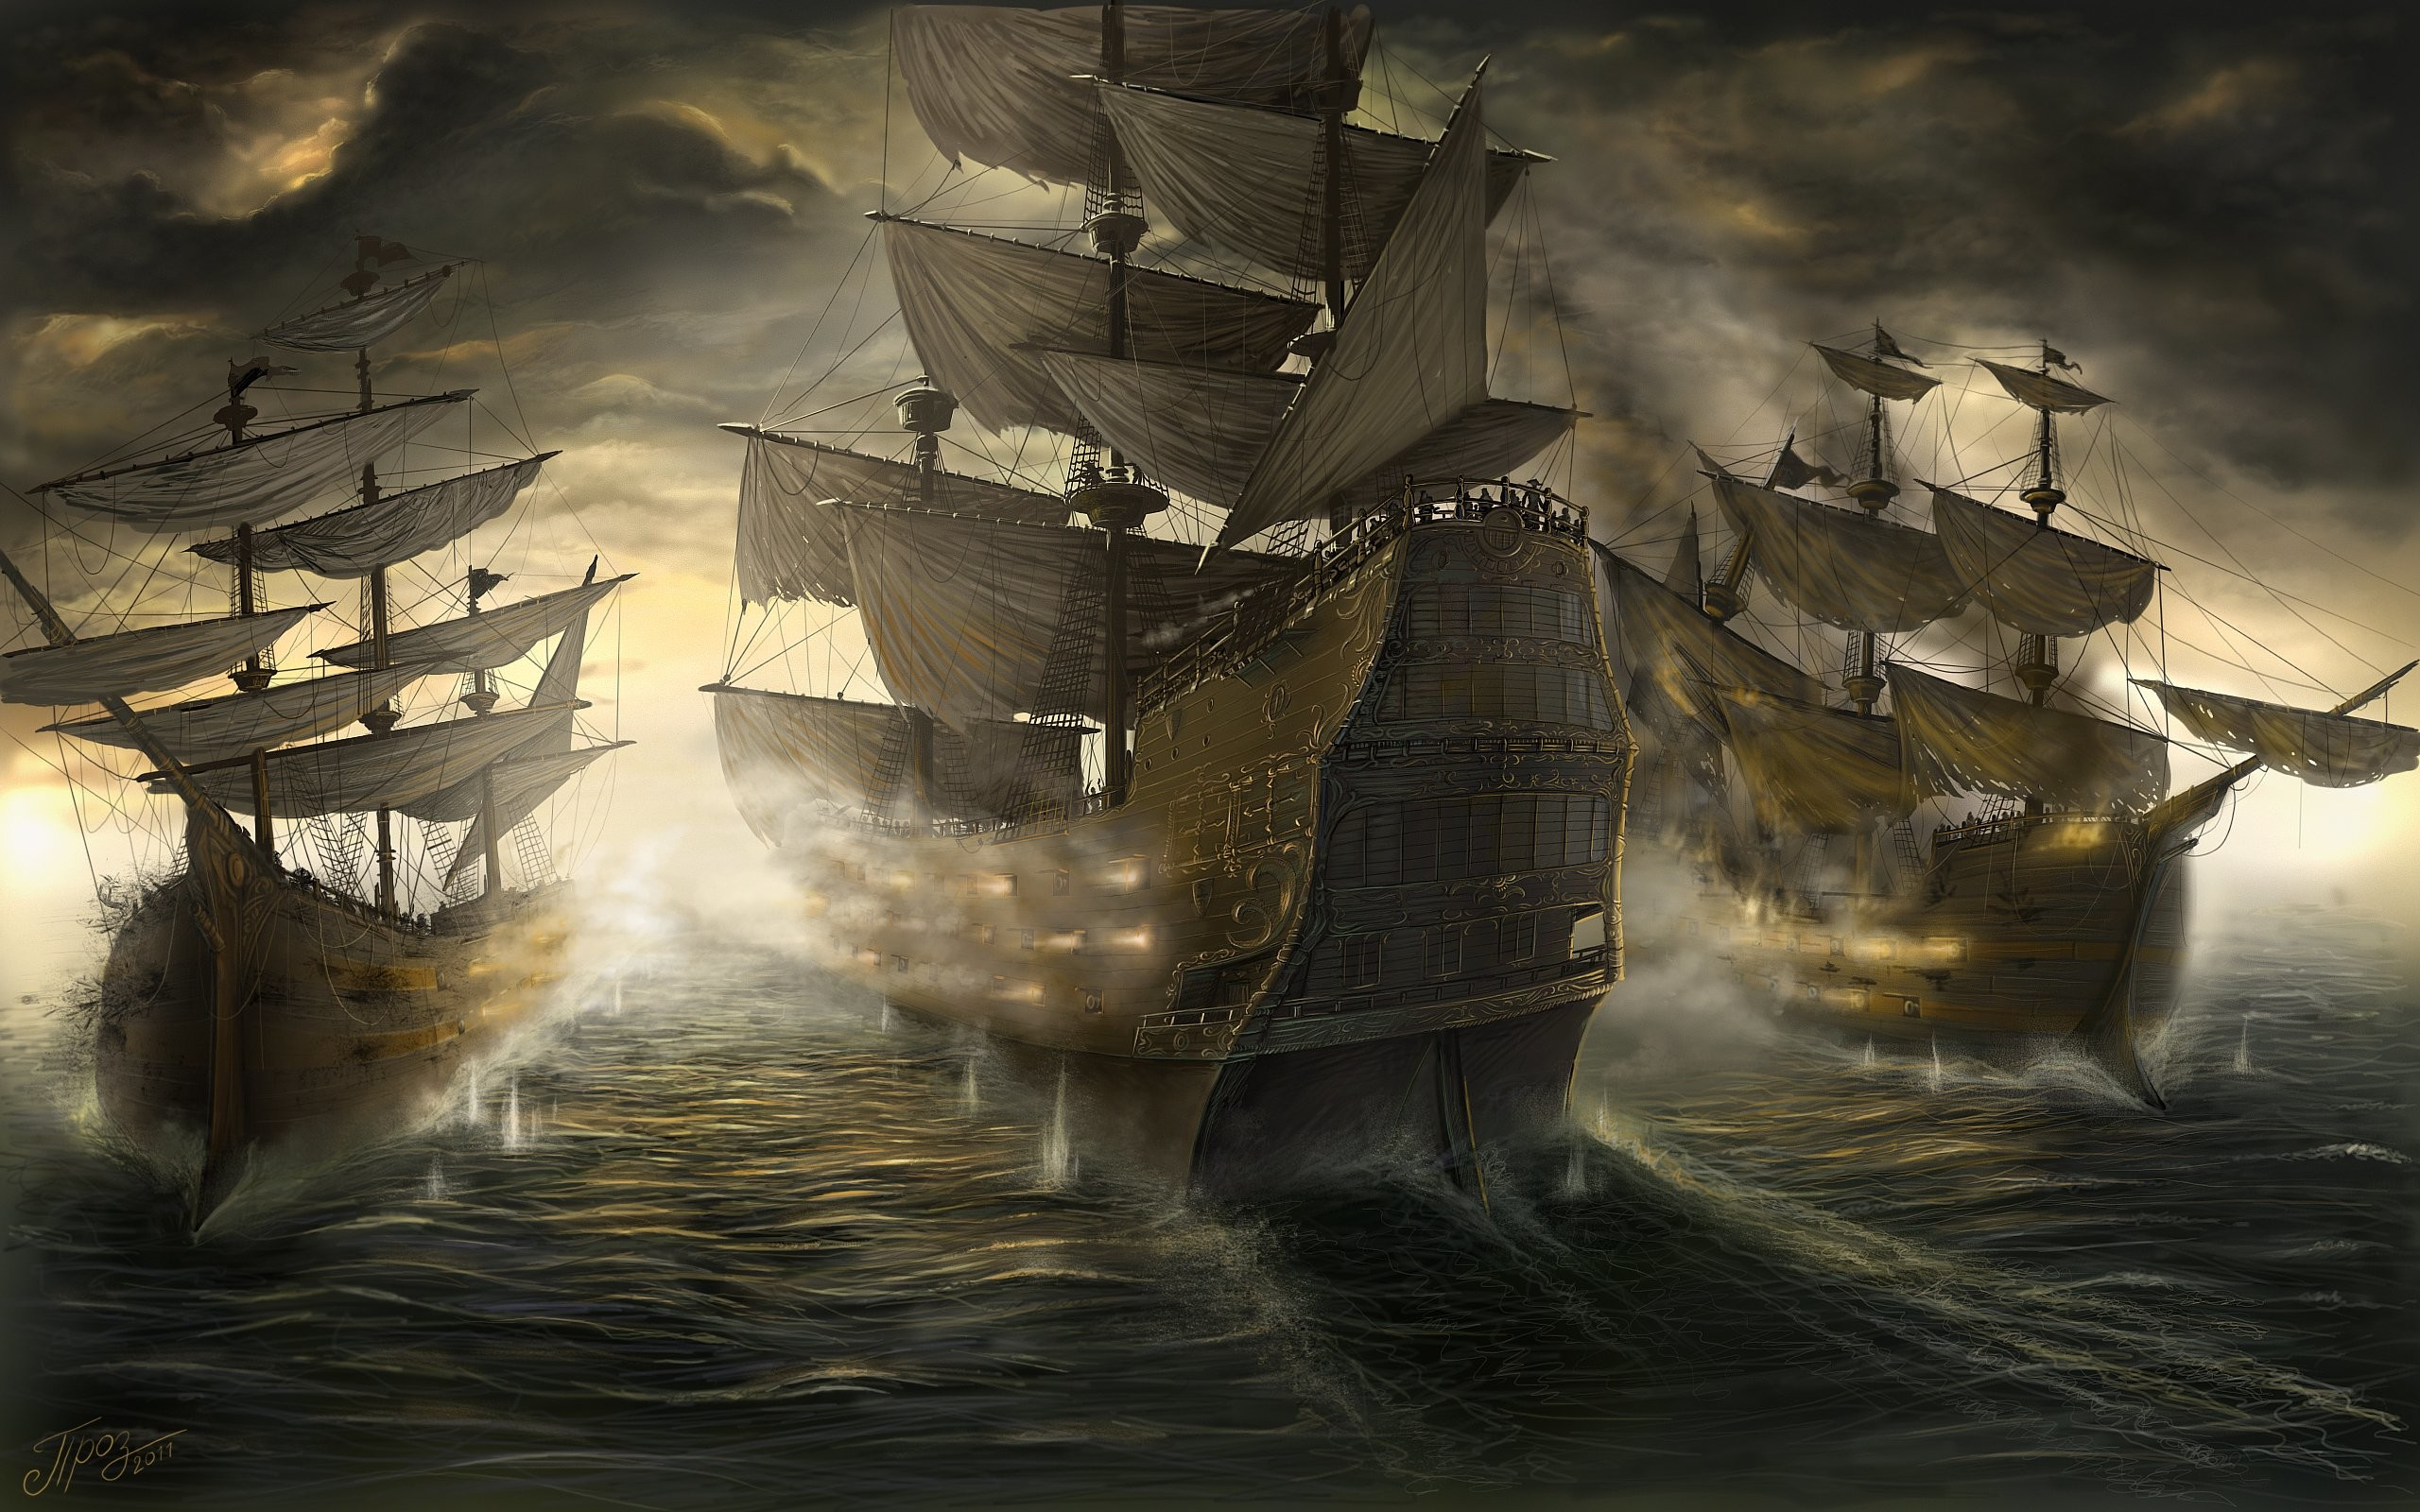 2560x1600 Battle Sailing Ship Fantasy boat war wallpaper |  | 437541 |  WallpaperUP